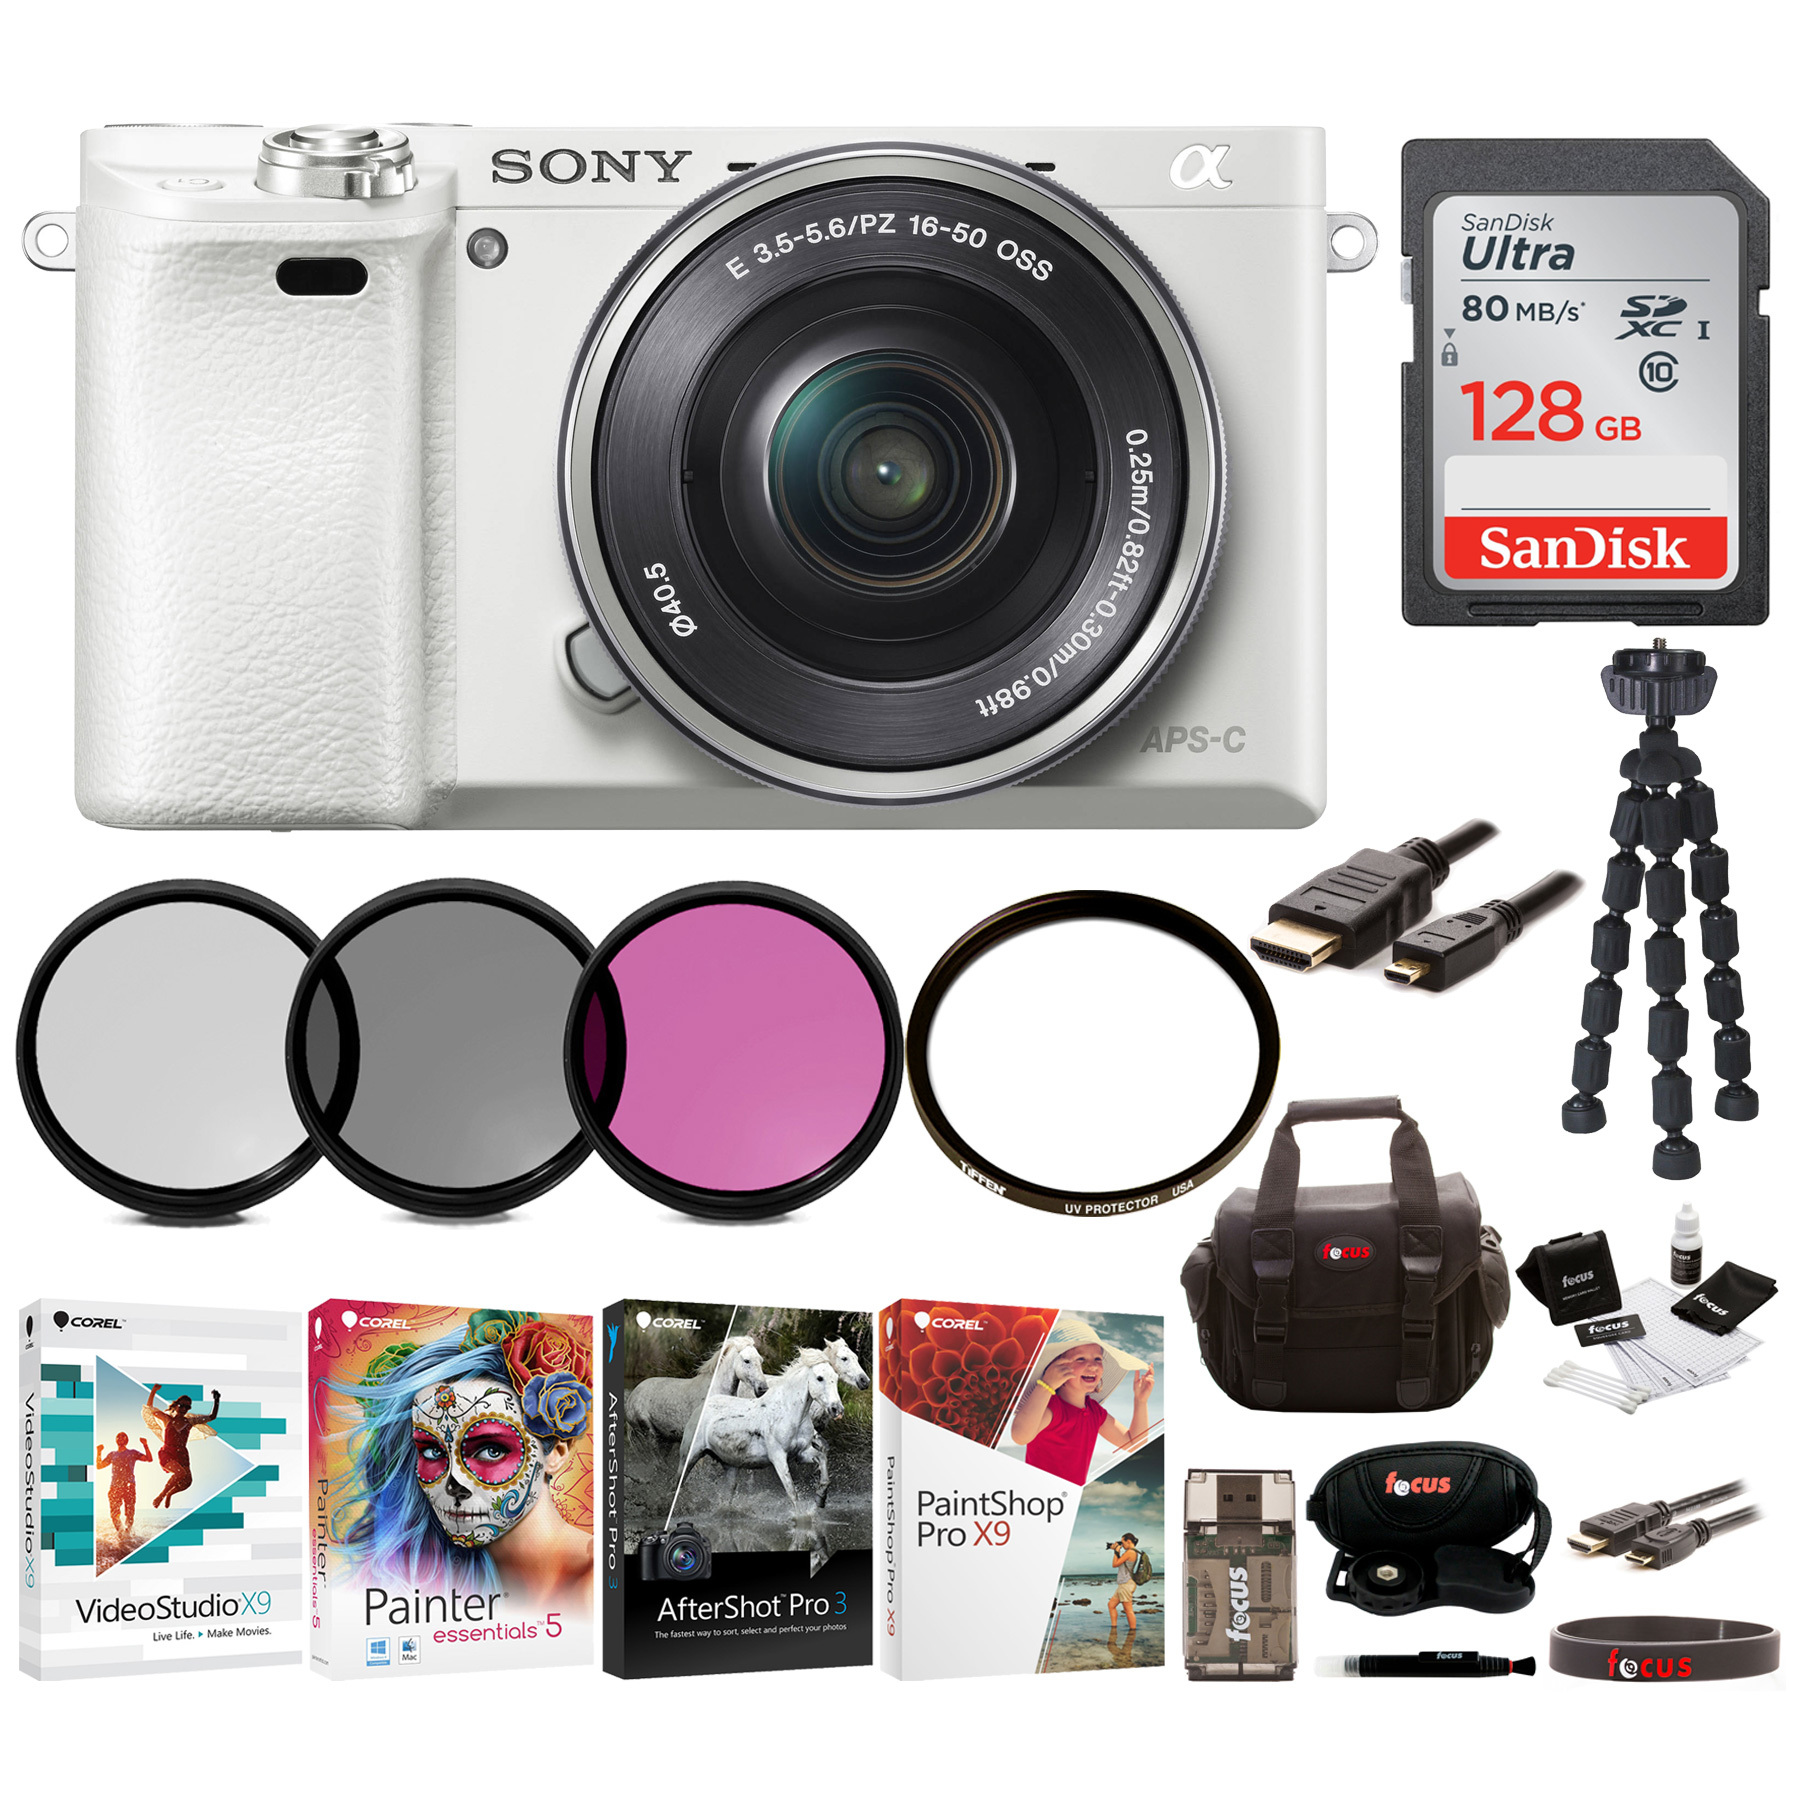 Sony Alpha a6000 Camera w/ 16-50mm Lens (White) + 128GB Card + Software Suite + Accessory Bundle